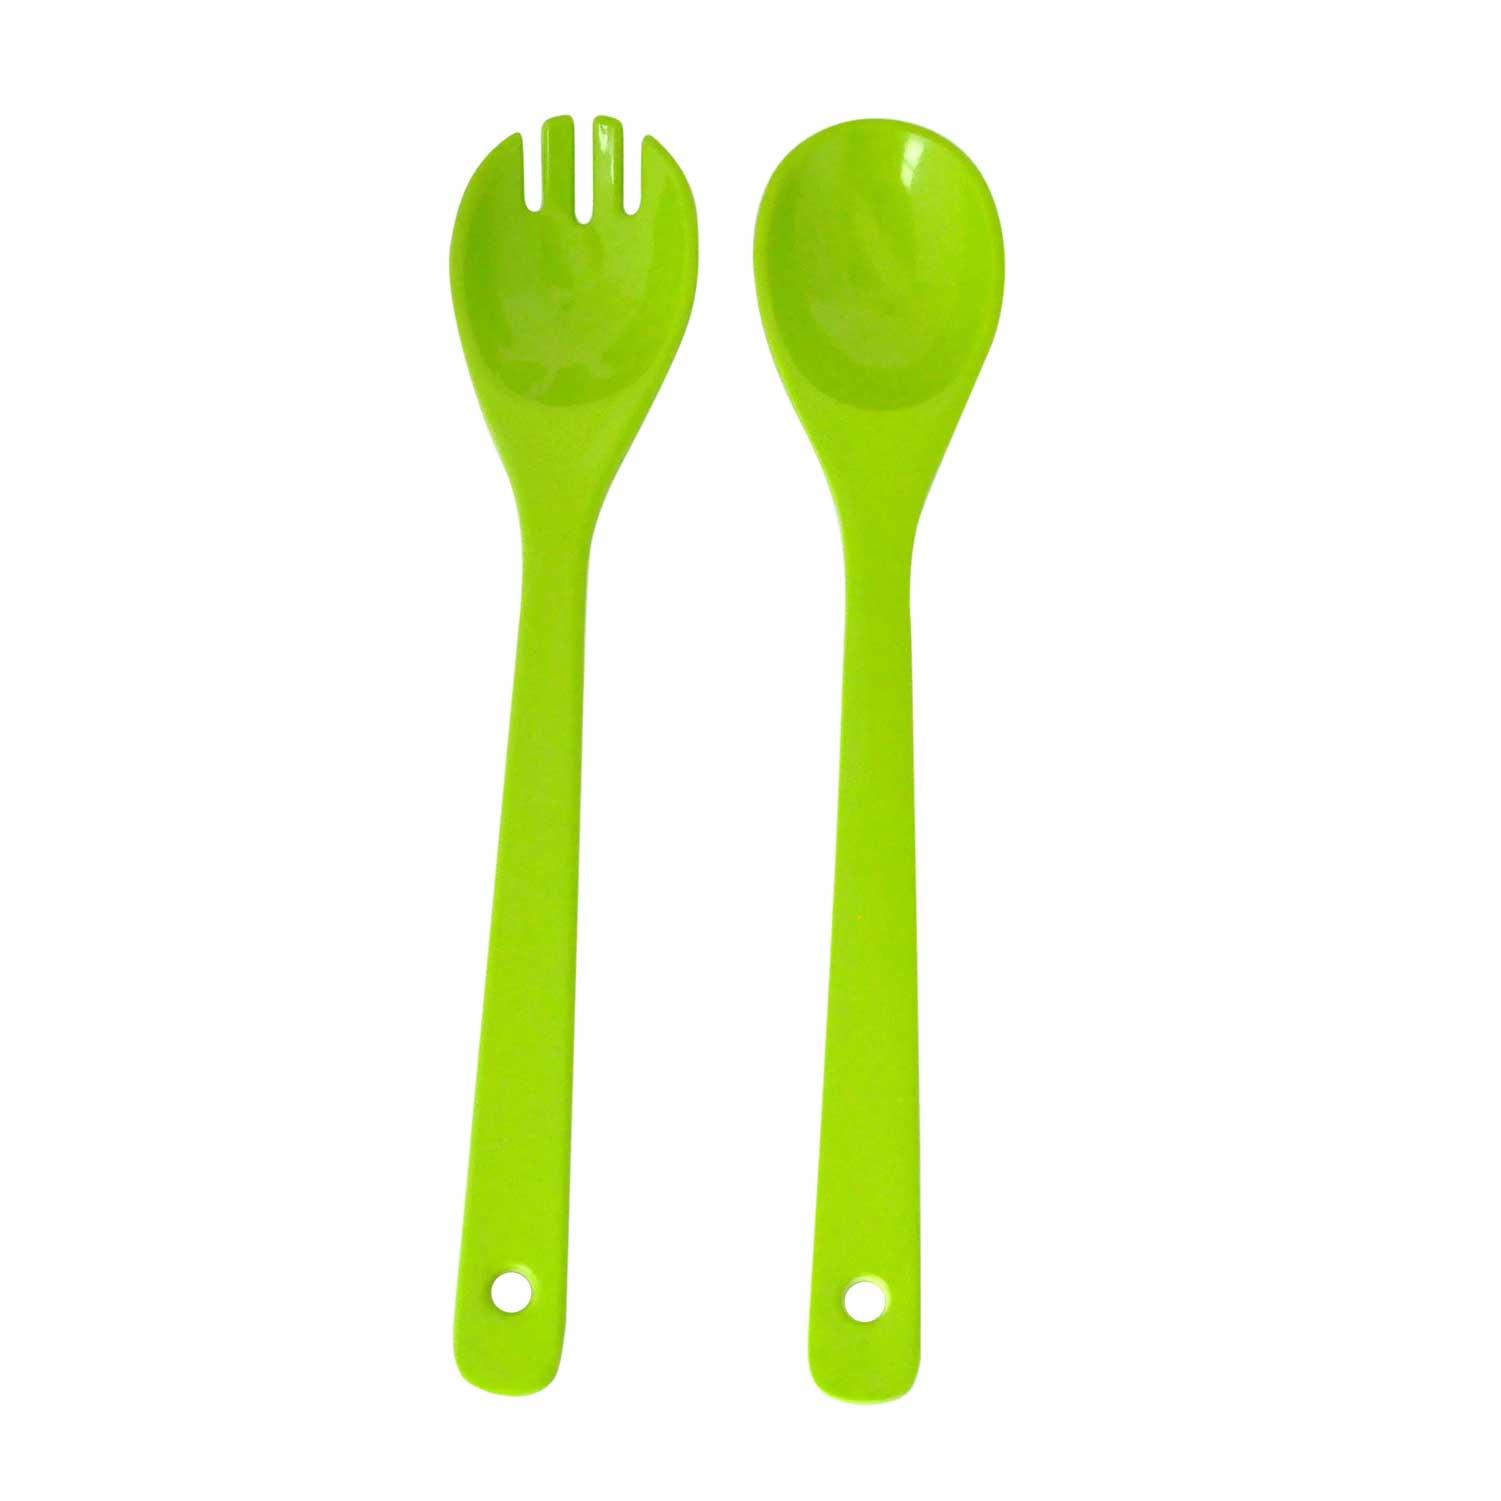 yumi-462-nature-green-natural-bamboo-salad-servers.jpg